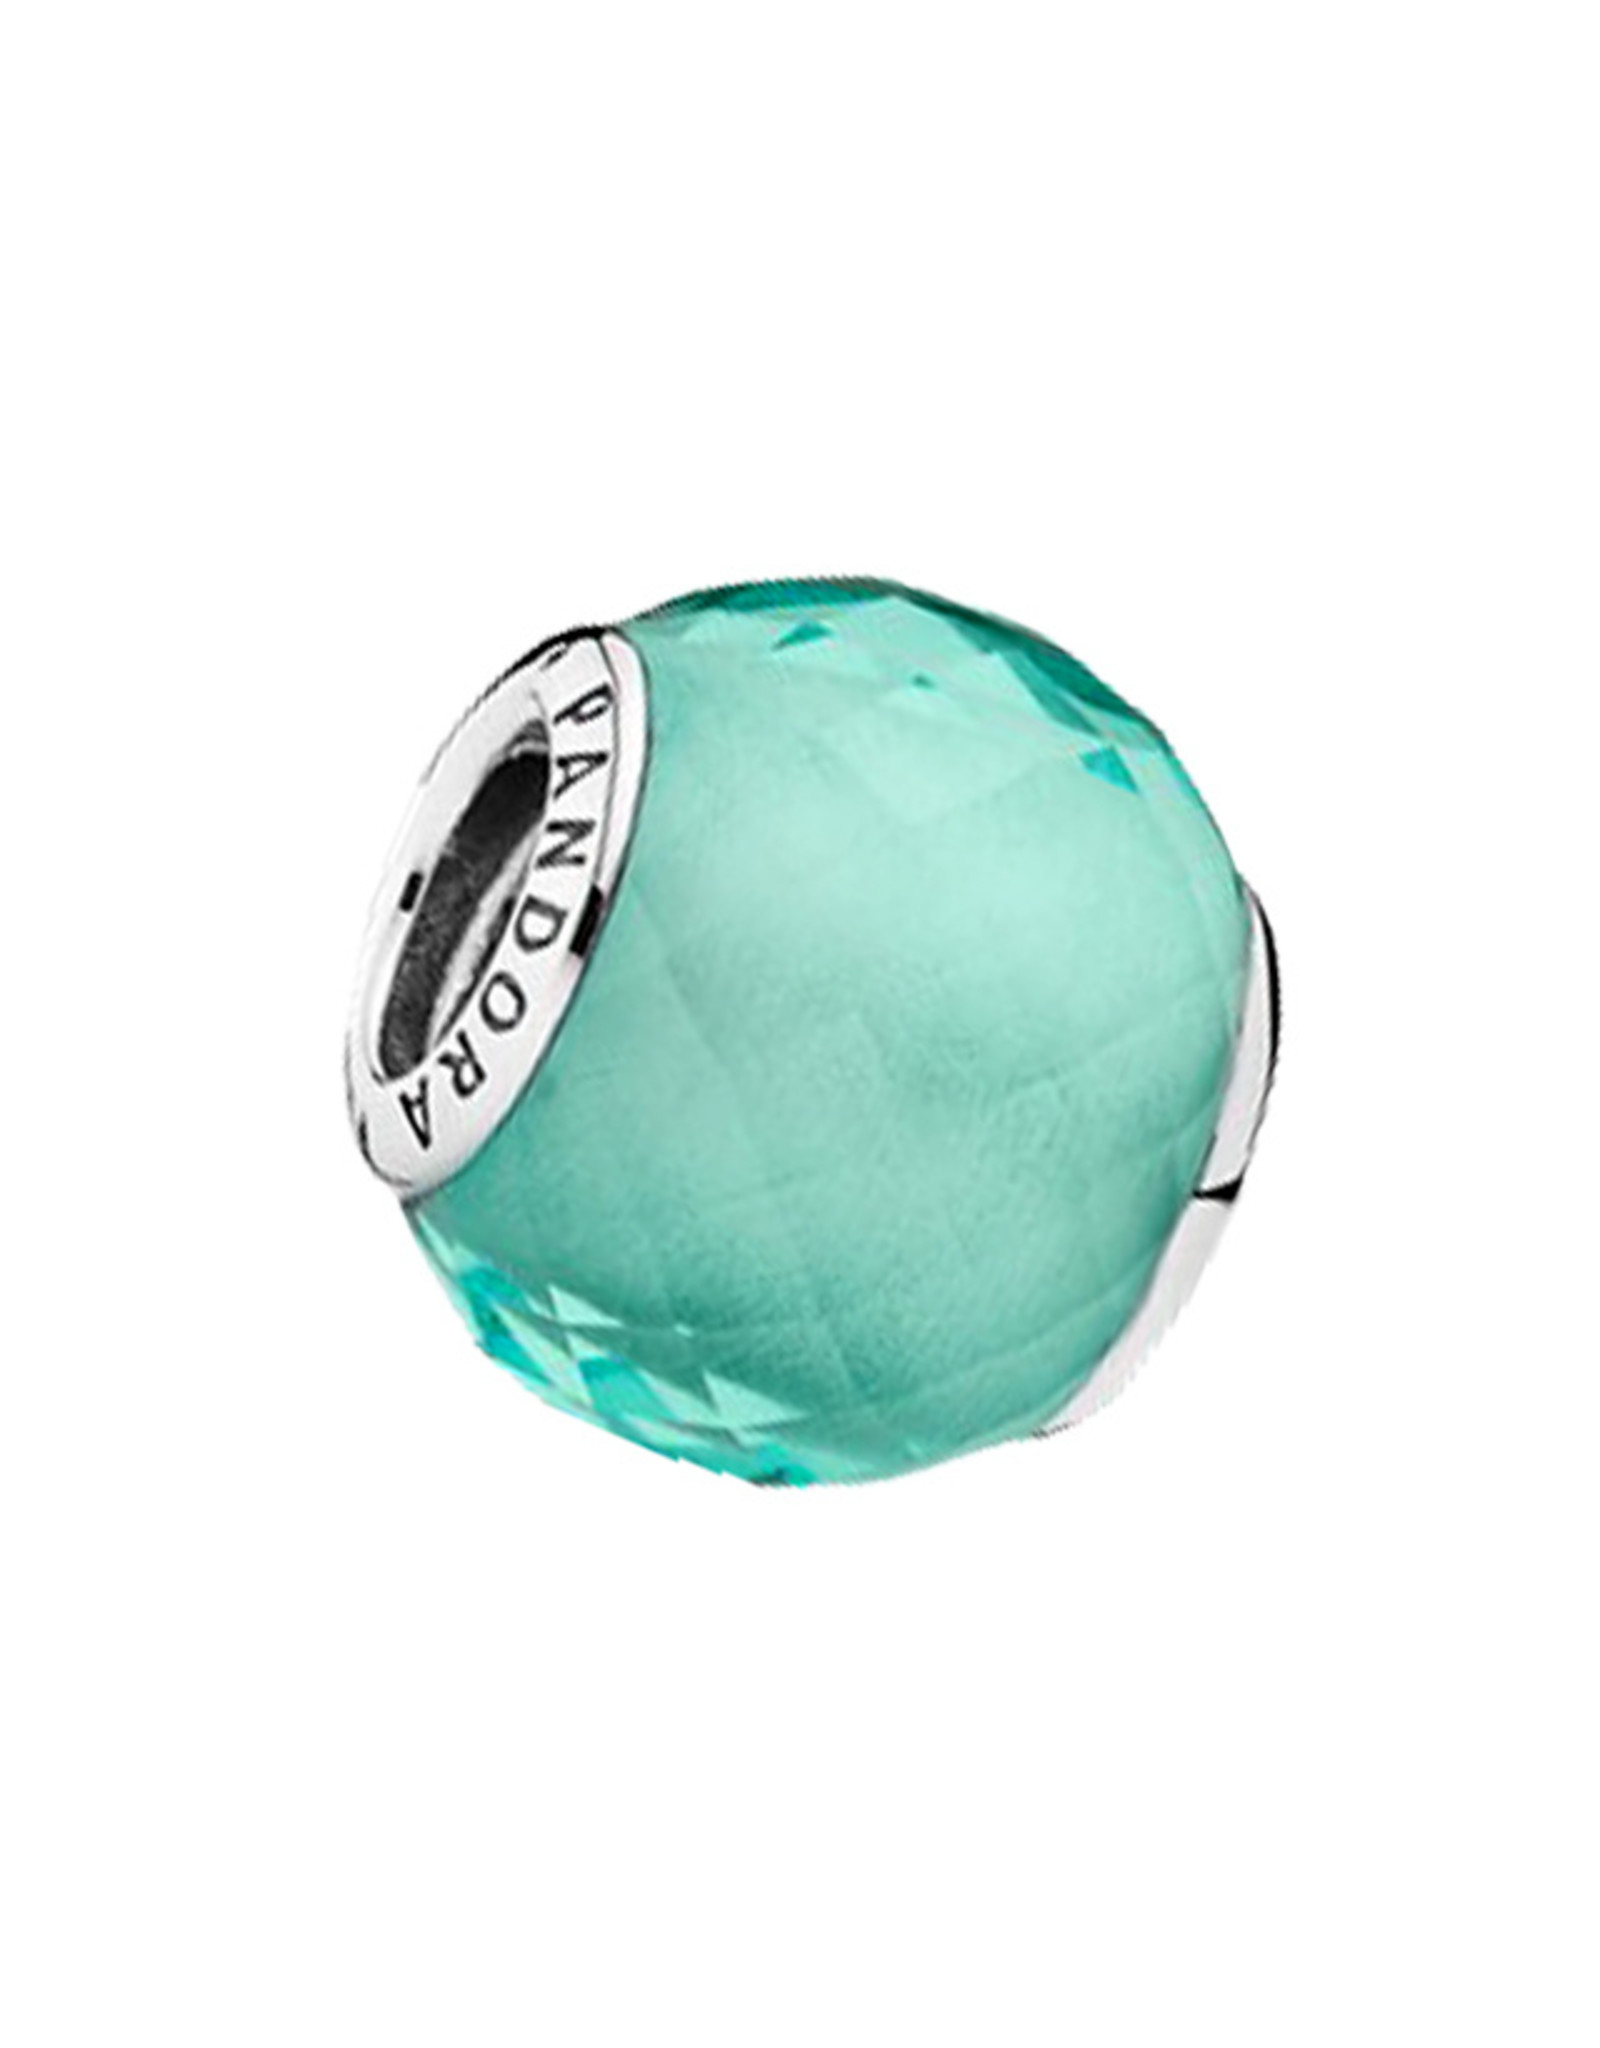 Pandora Pandora Charm, Petite Facets, Synthetic Green Quartz